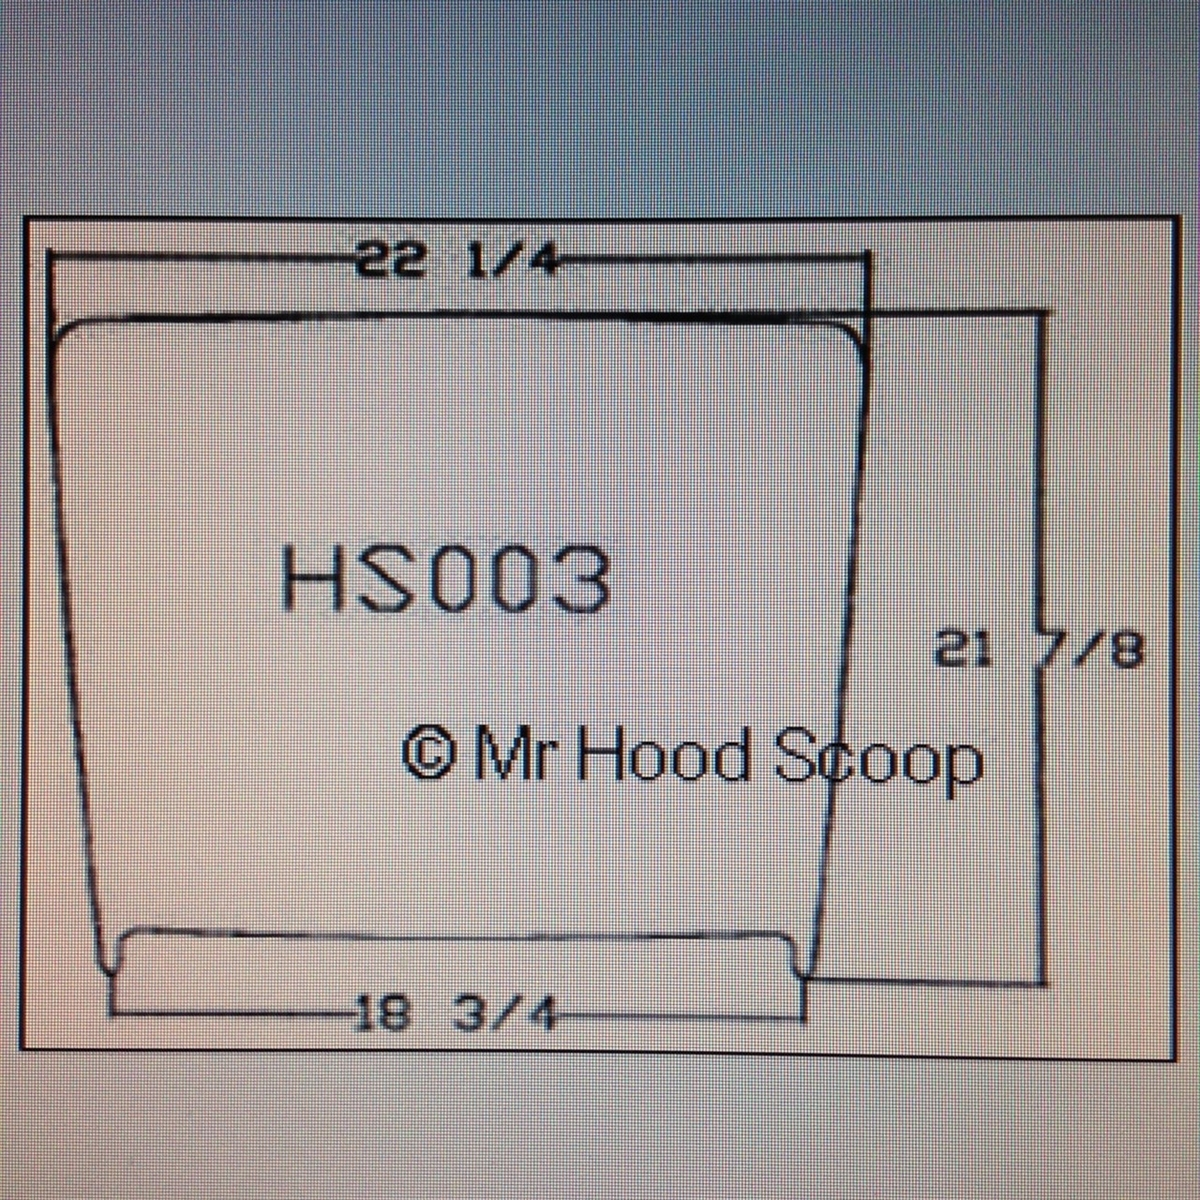 Xtreme Autosport Unpainted Hood Scoop Compatible with 2011-2016 Ford Super Duty F250 F350 by MrHoodScoop HS002